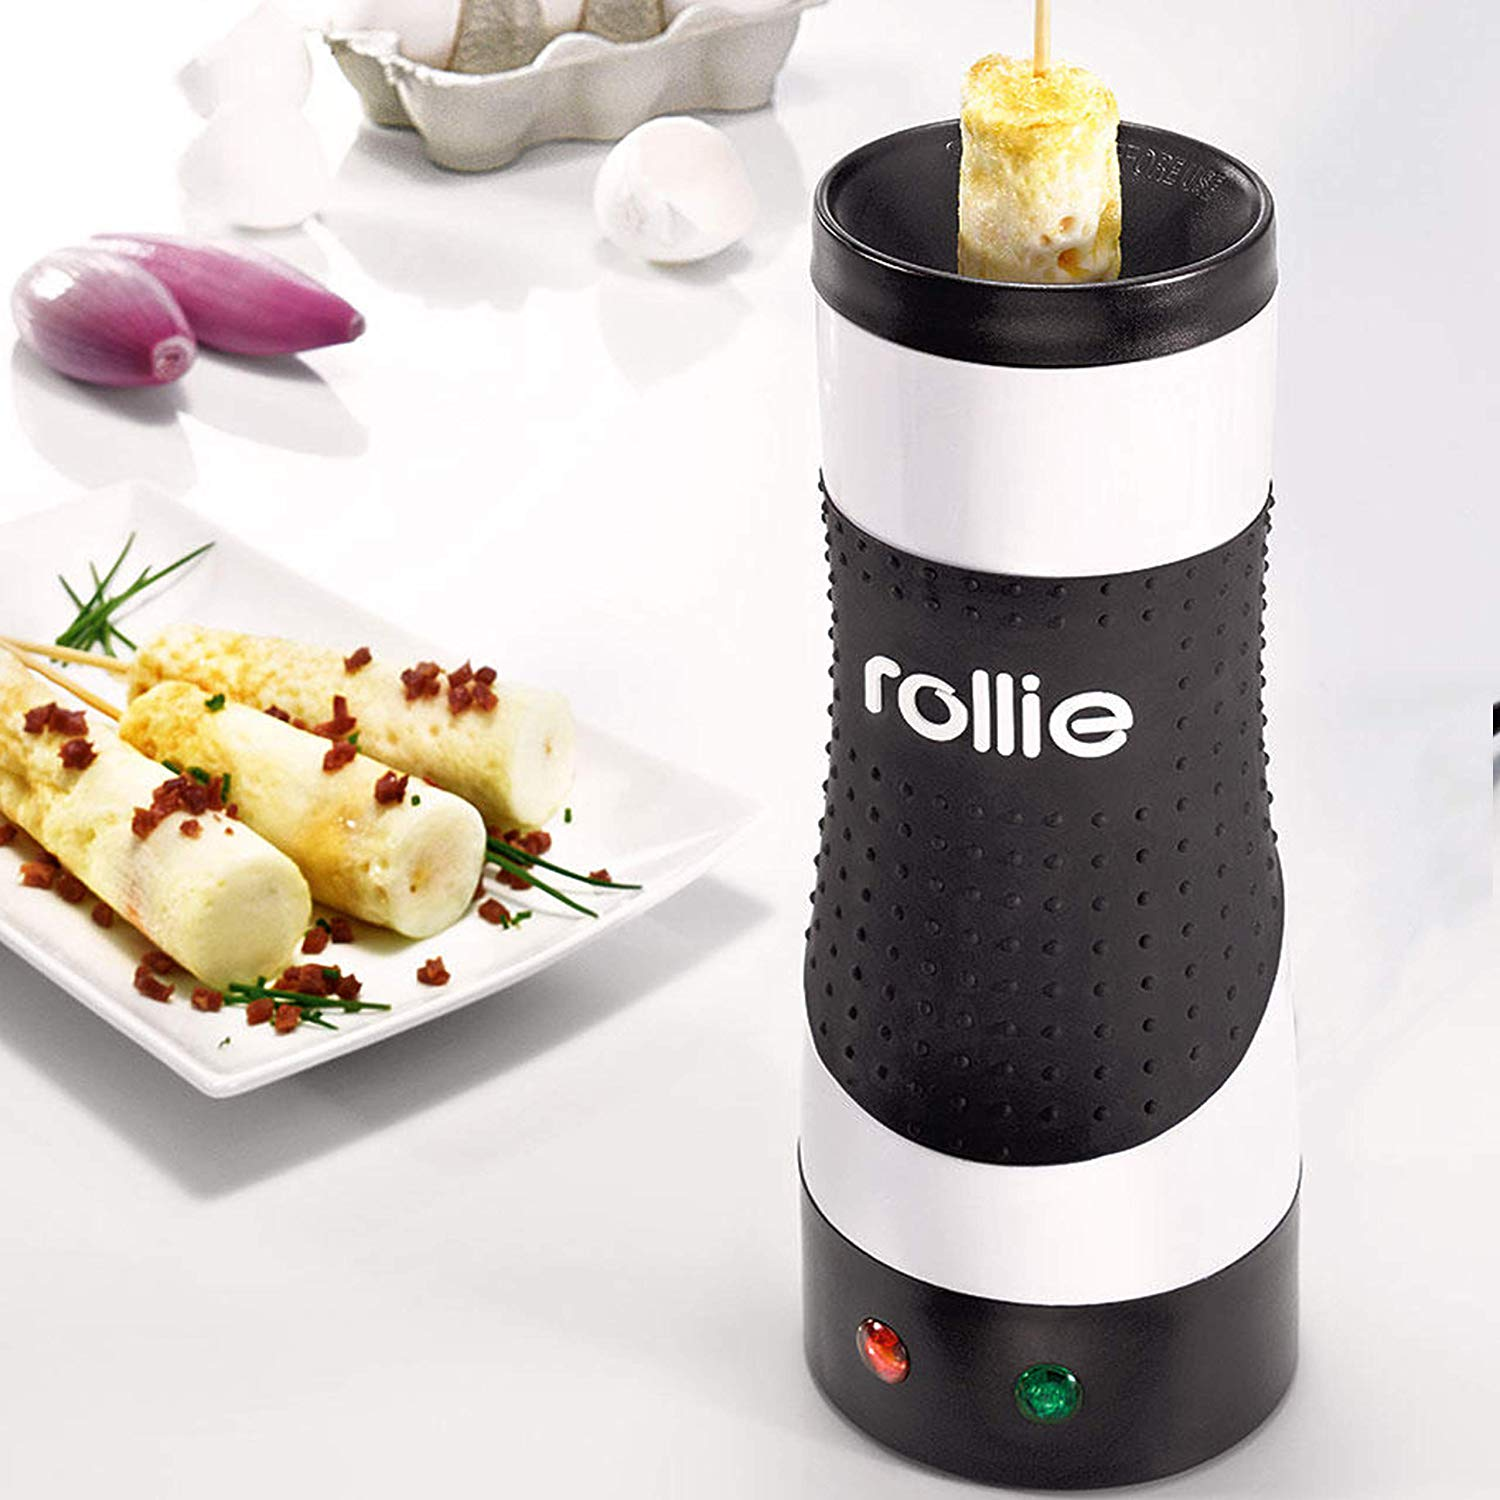 Rollie Hands-Free Egg Cooker